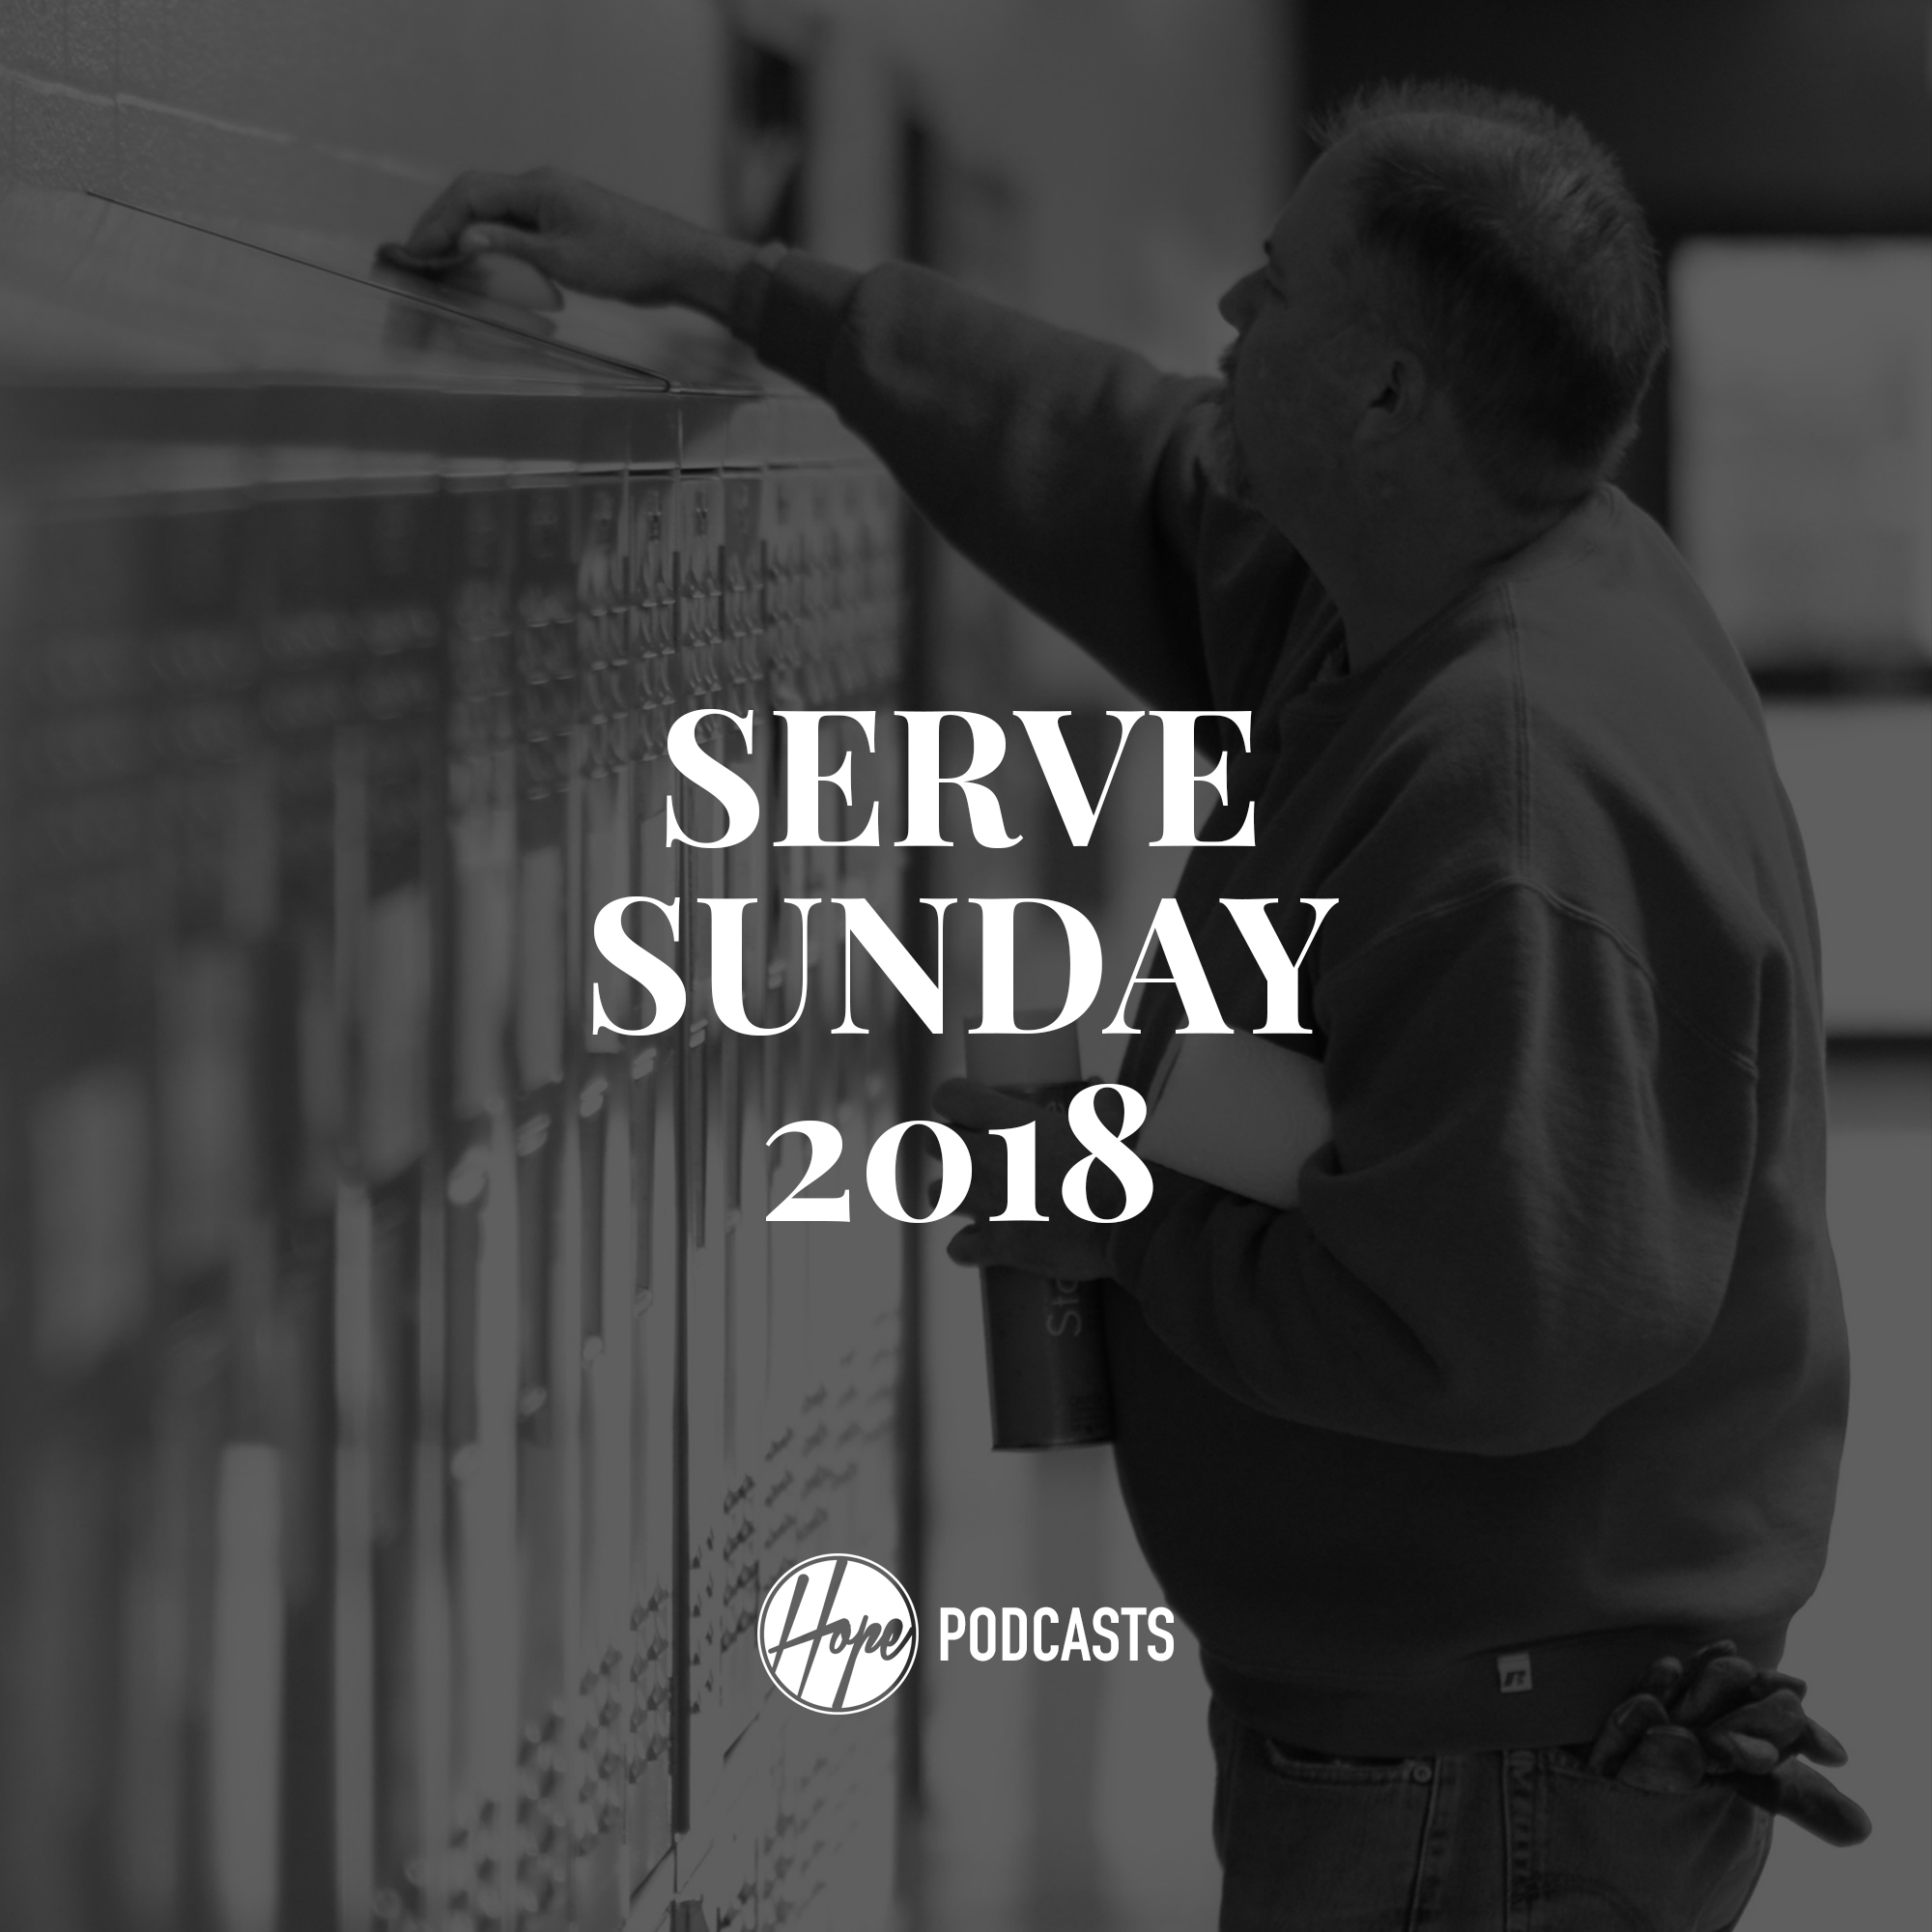 serve sunday 2018.jpg